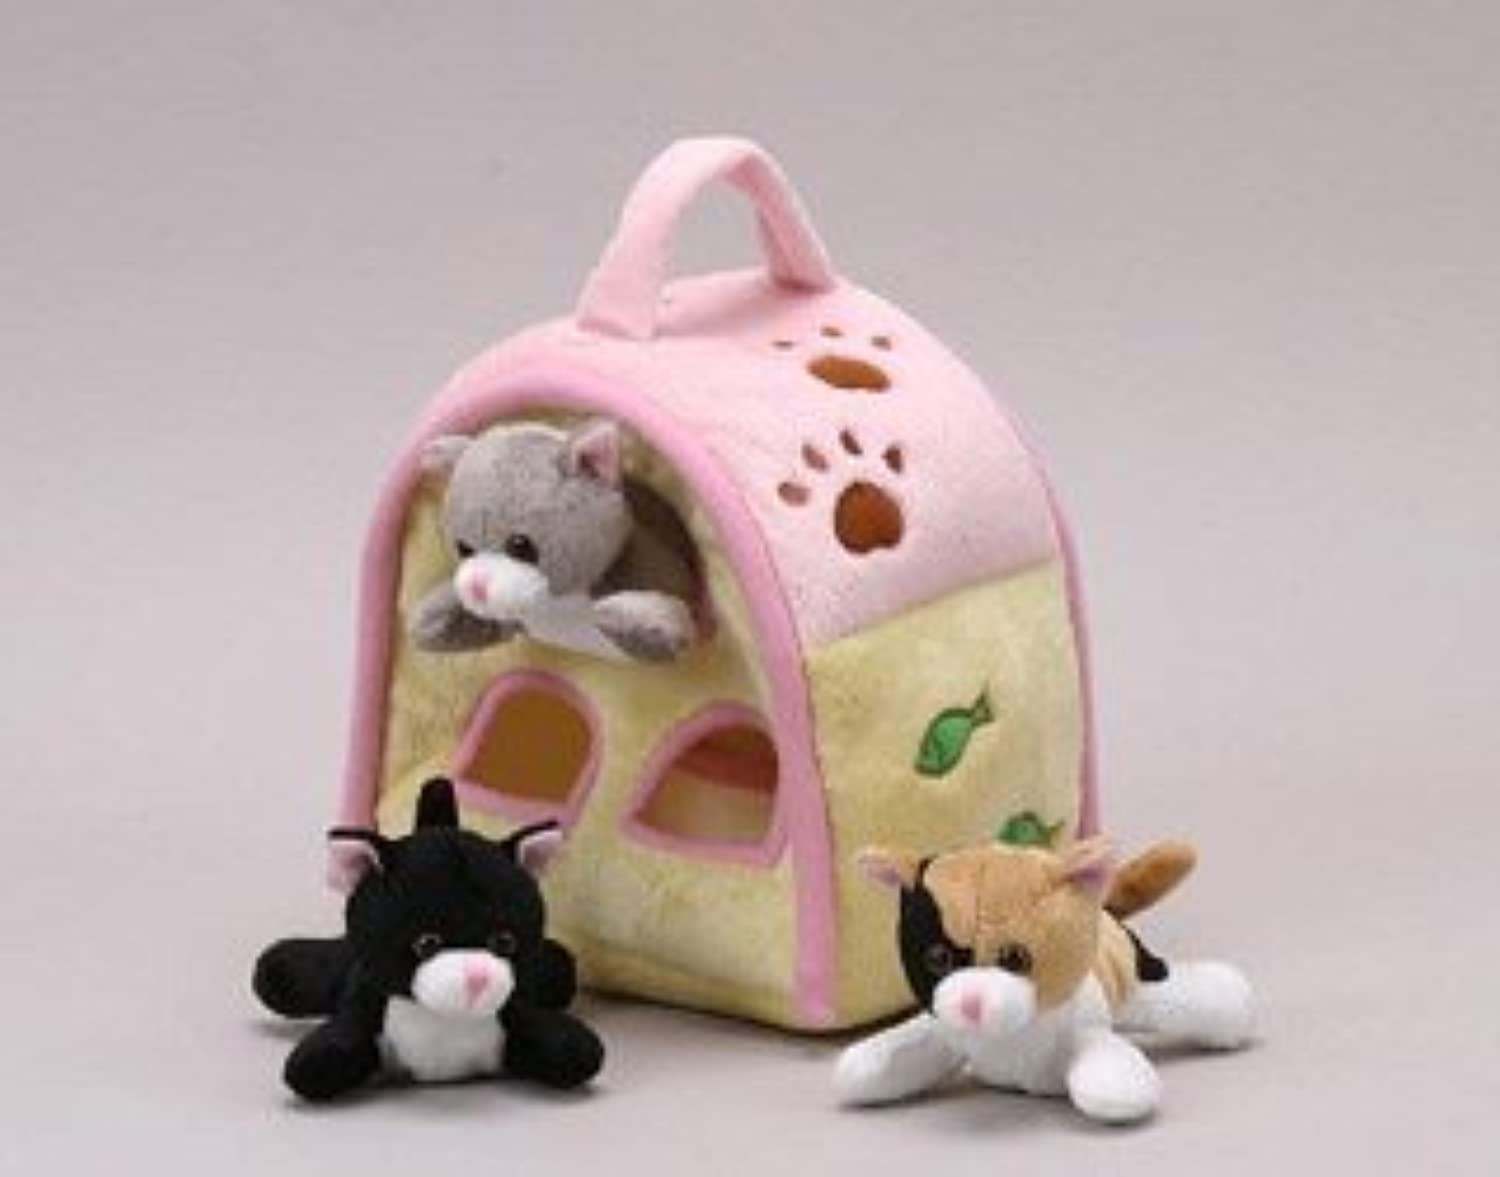 Cat Finger Puppet Play House 8 by Unipak by Unipak